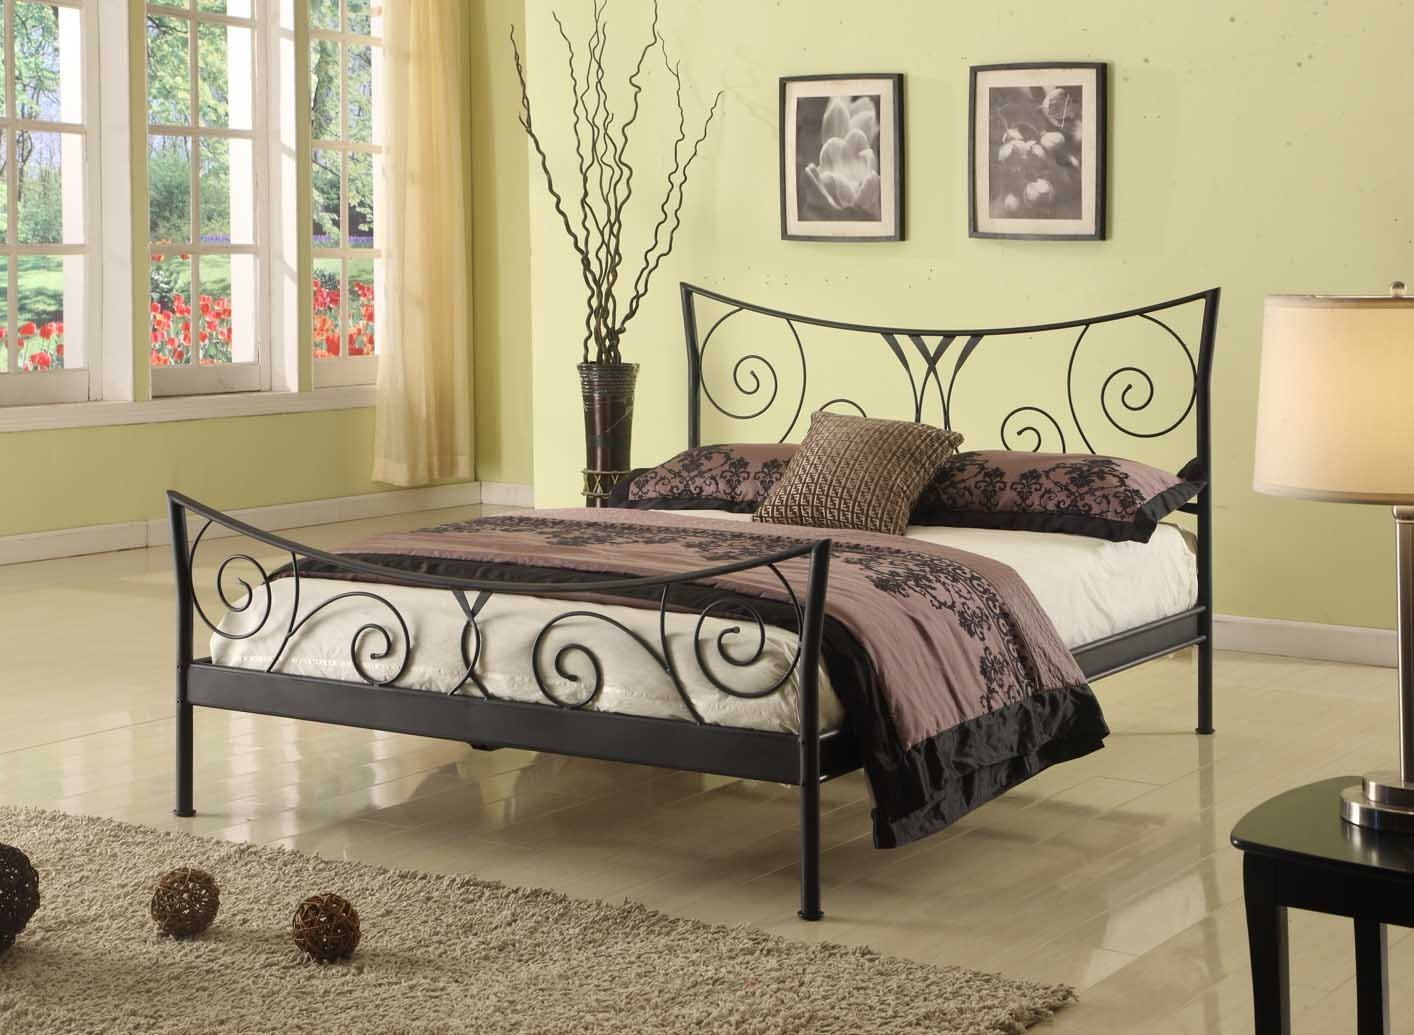 black metal queen size bed headboard footboard rails metal slats new ebay. Black Bedroom Furniture Sets. Home Design Ideas